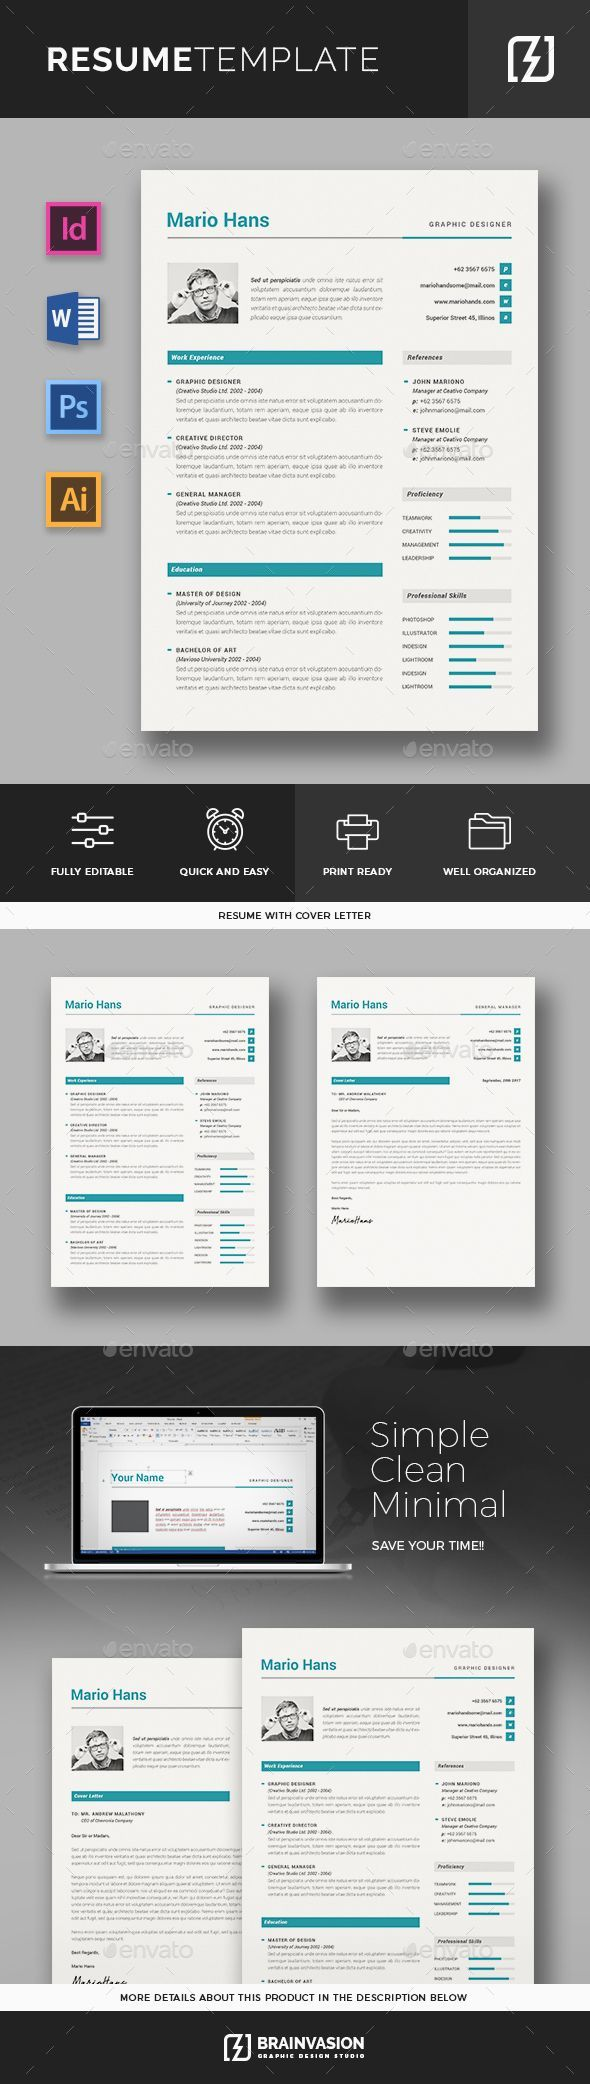 Resume Template PSD InDesign INDD AI MS